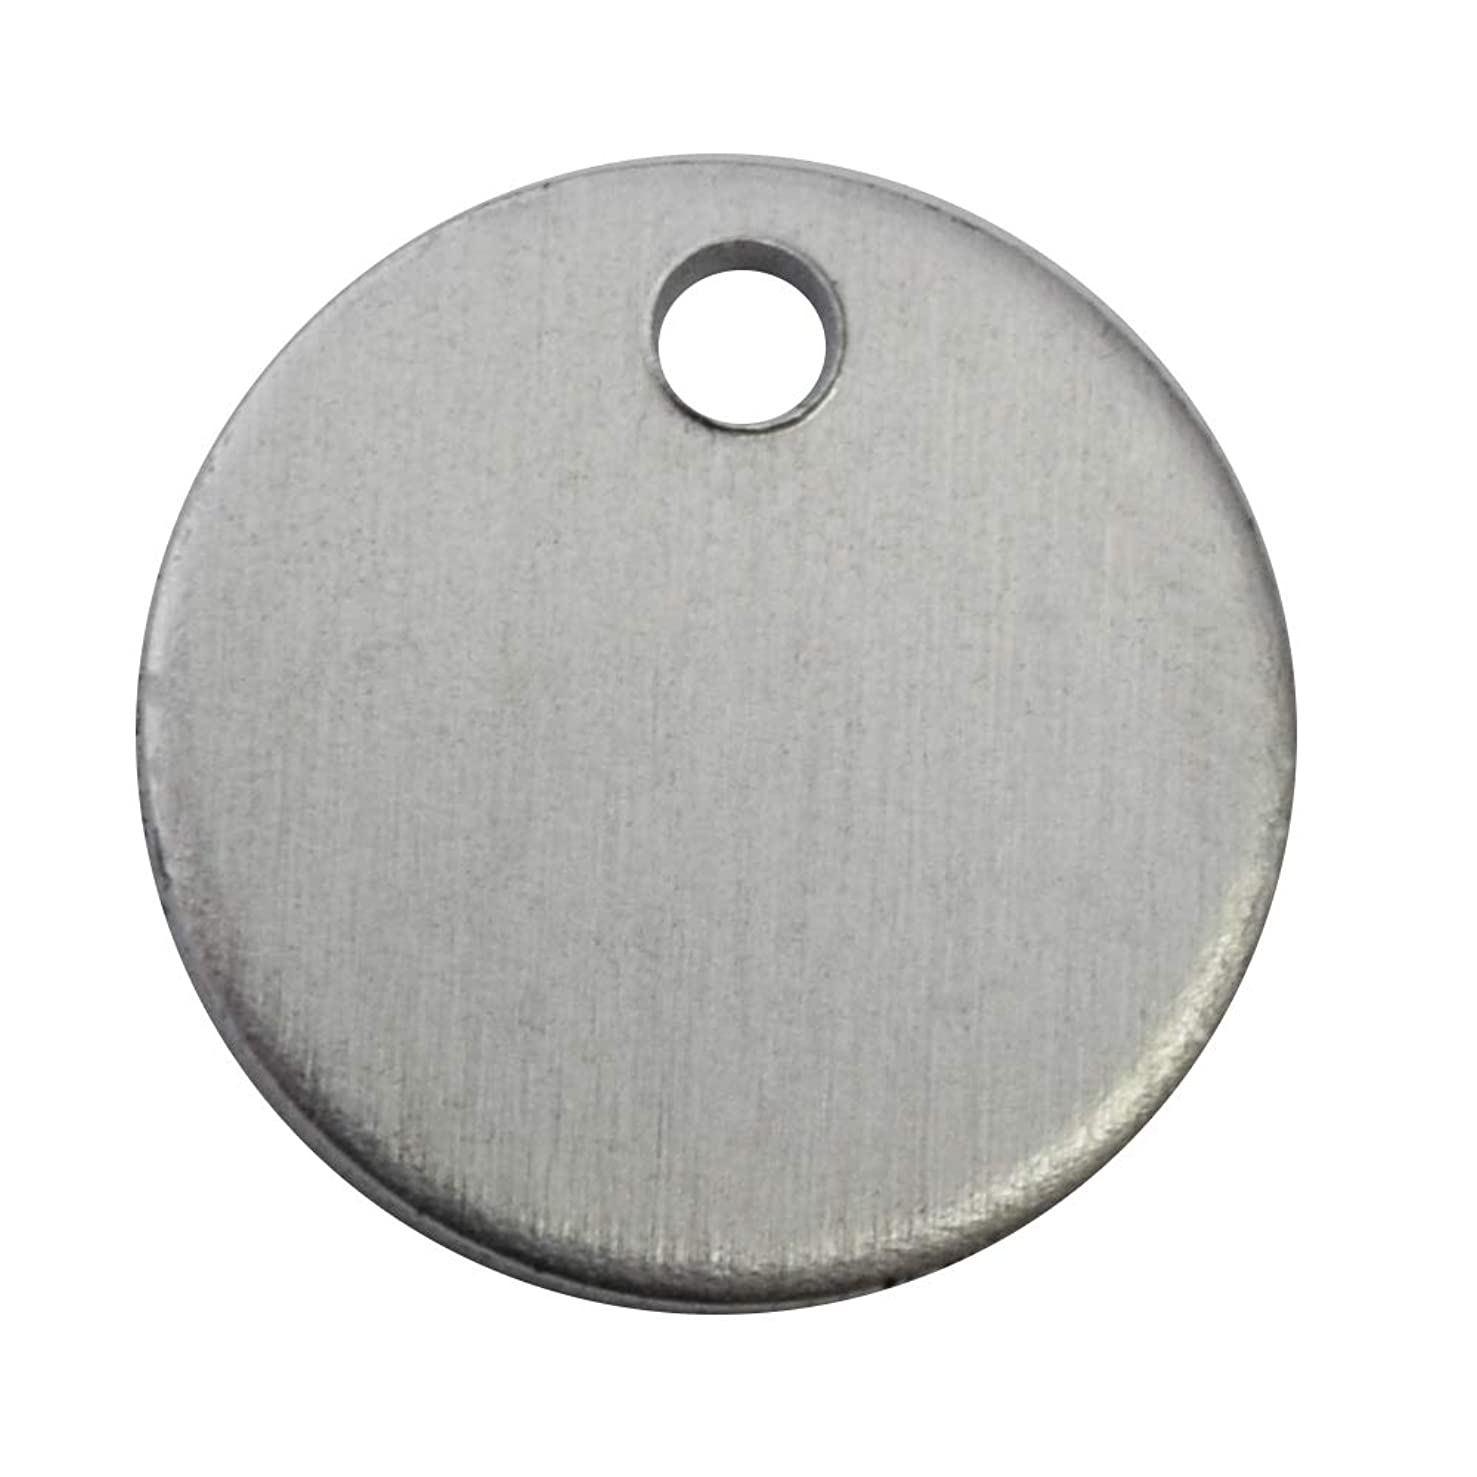 RMP Stamping Blanks, 5/8 Inch Round with Hole, Aluminum .063 Inch (14 Gauge) PVC Coating on Both Sides - 50 Pack